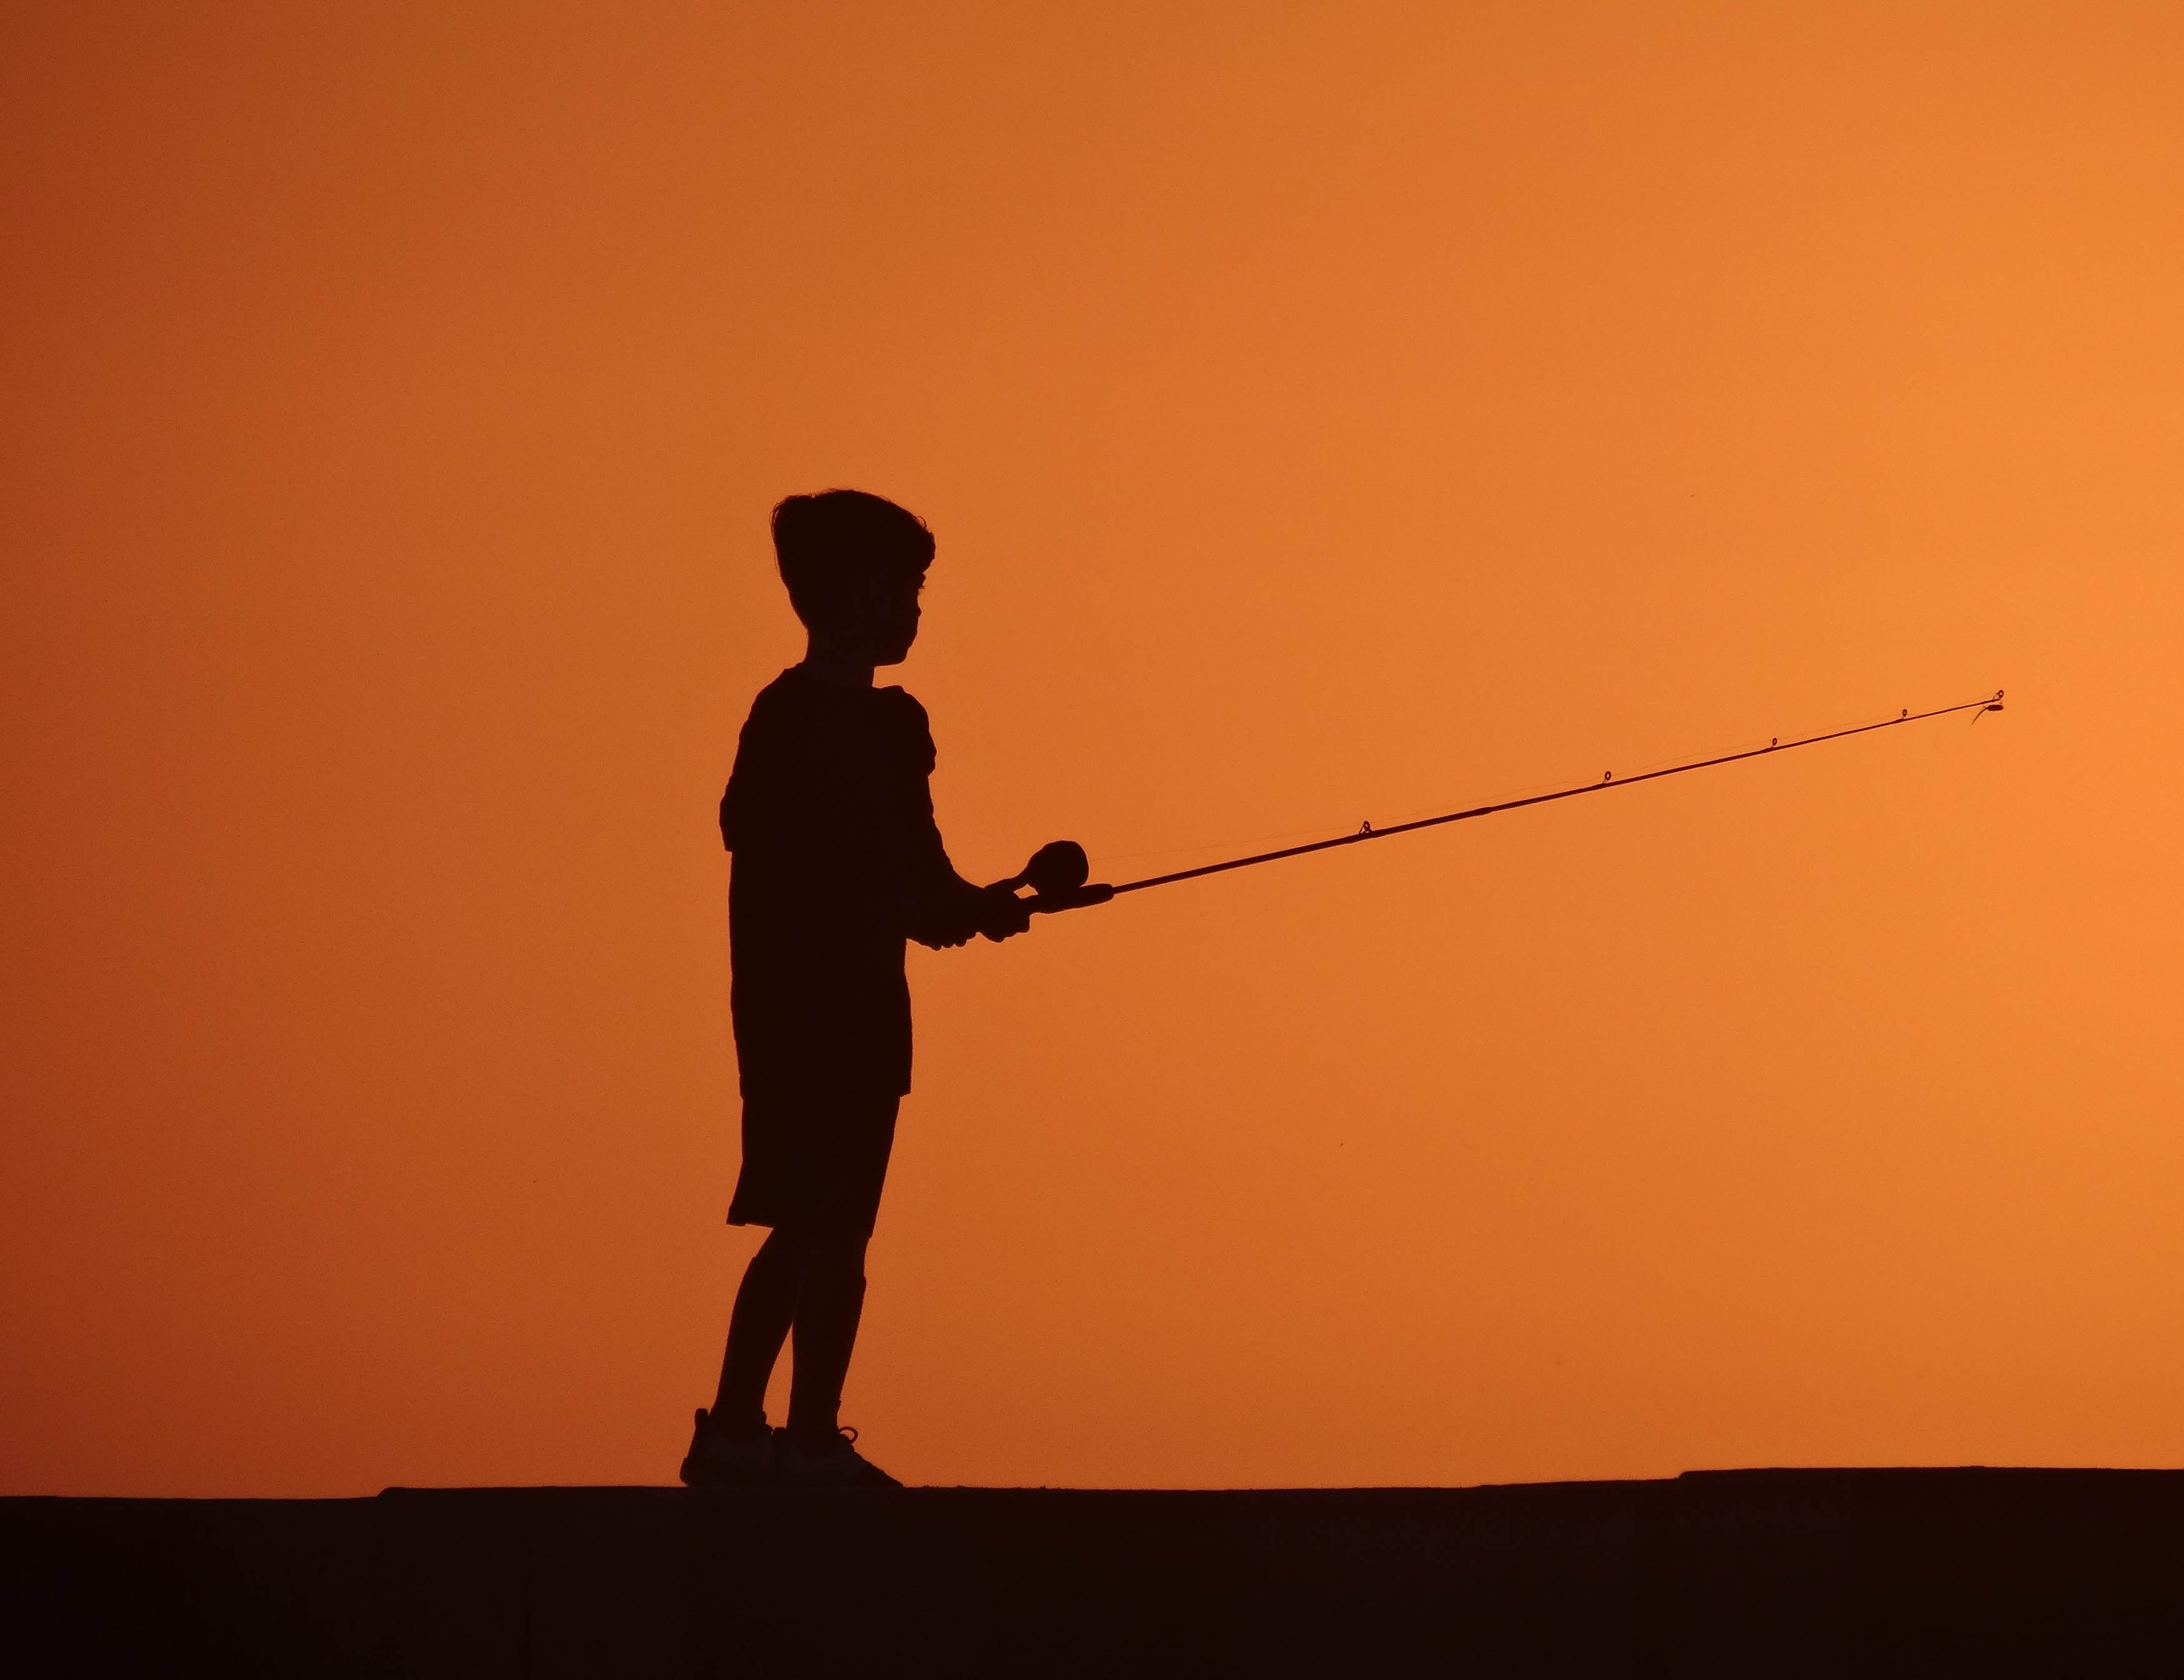 silhouette photo of boy fishing during sunset